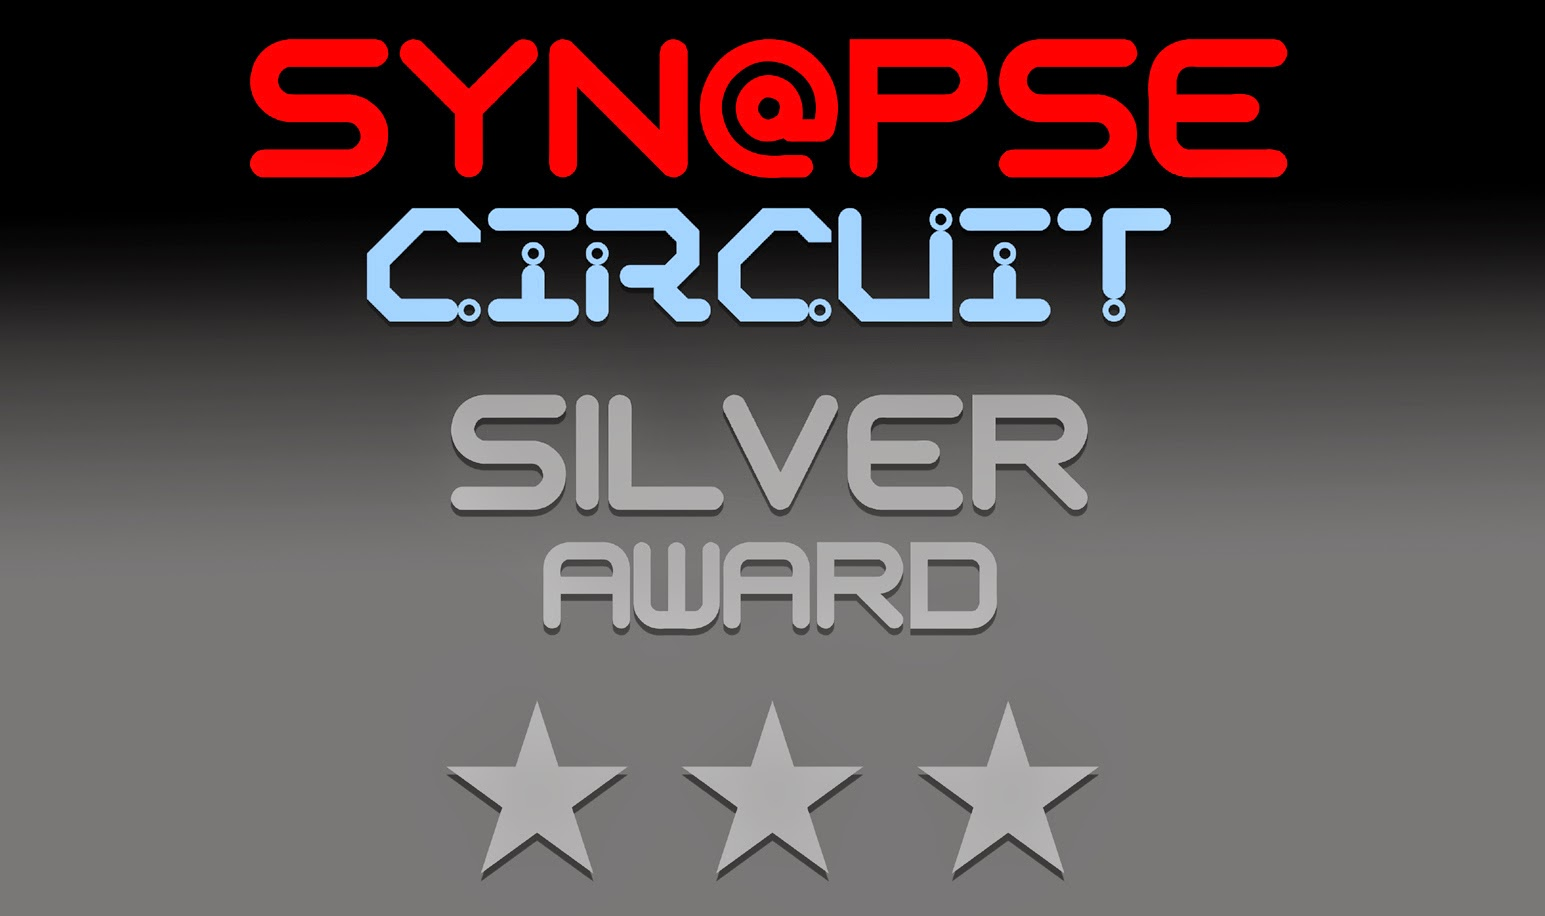 Synapse Circuit Technology Review February 2015 Usbtousar Usb To Serial Edifier Could Be Onto A Winner If They Gave The R1700bt Bigger Woofer For Same Price Despite Silver Award I Do Think That This Is